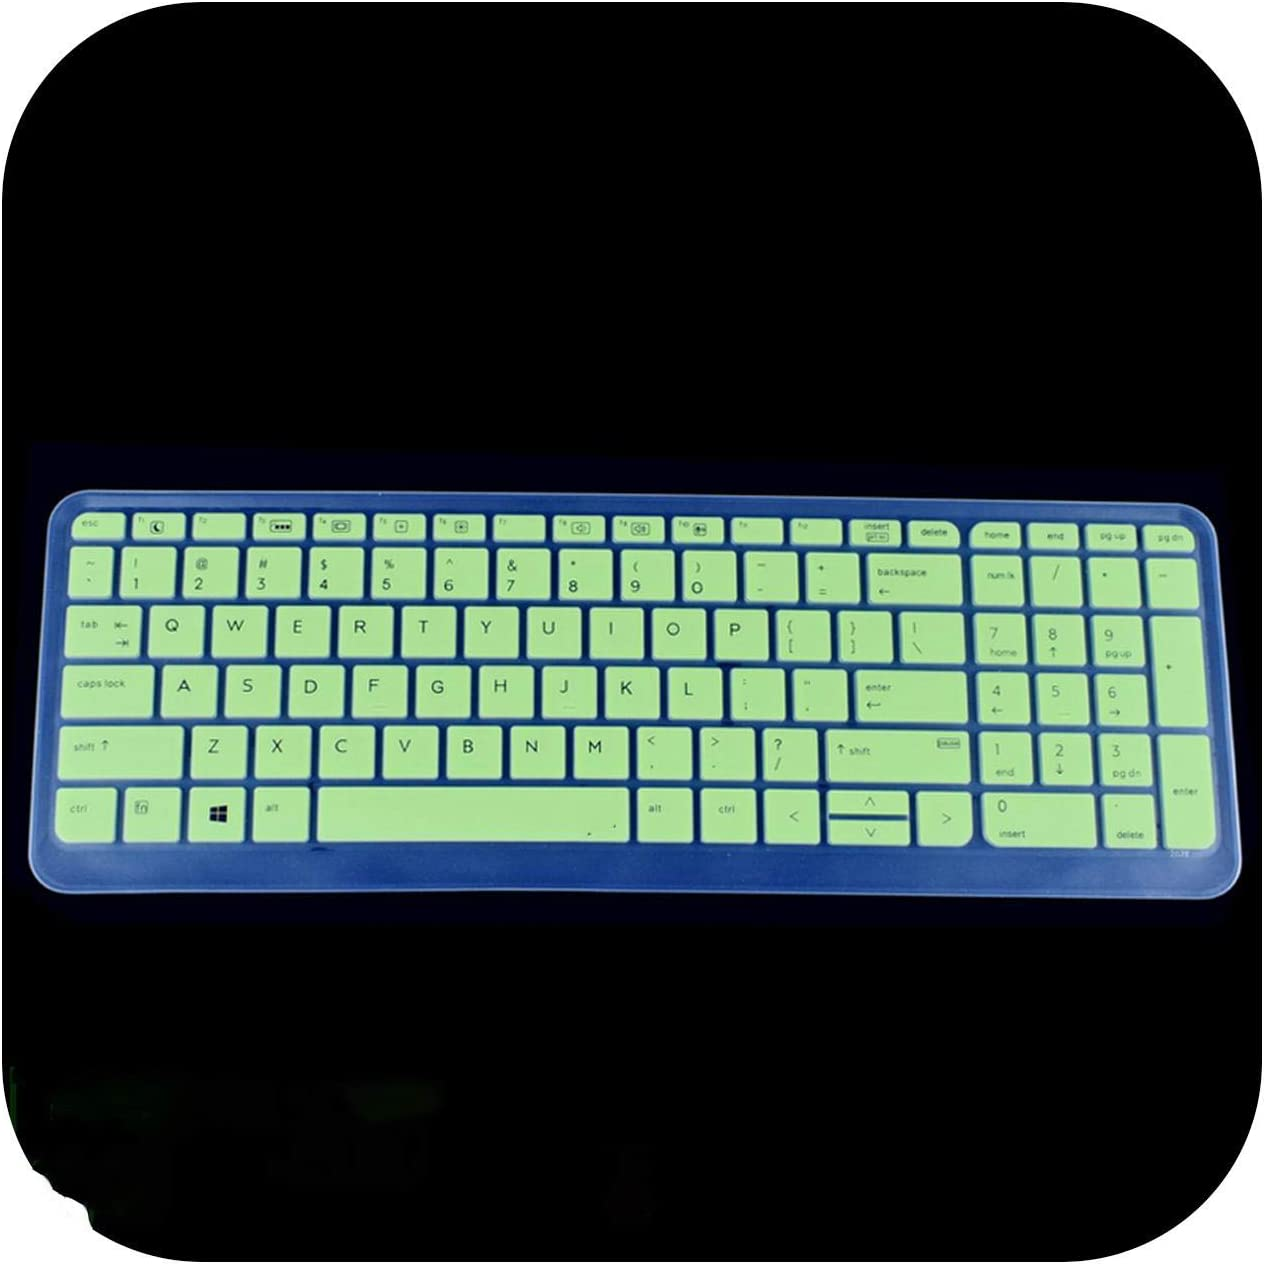 450 G3 G4 G5 455 G3 i5 i7 15.6 inch Silicone Keyboard Cover Protector-Transparent for HP PROBOOK 650 G2 G3 G4